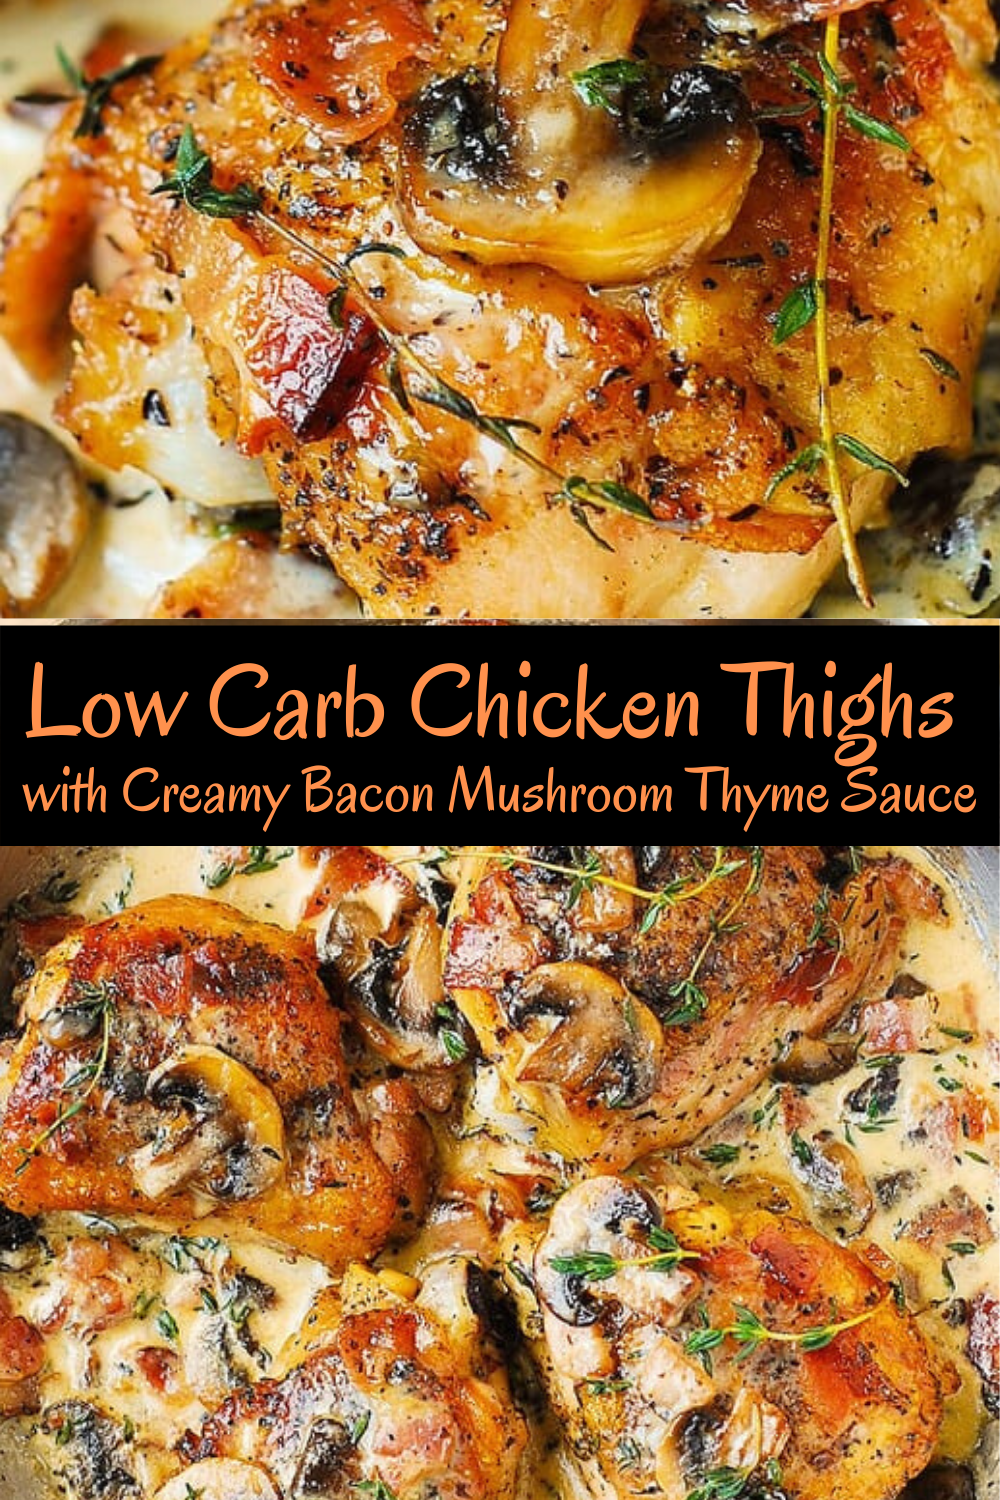 Low Carb Chicken Thighs with Creamy Bacon Mushroom Thyme Sauce